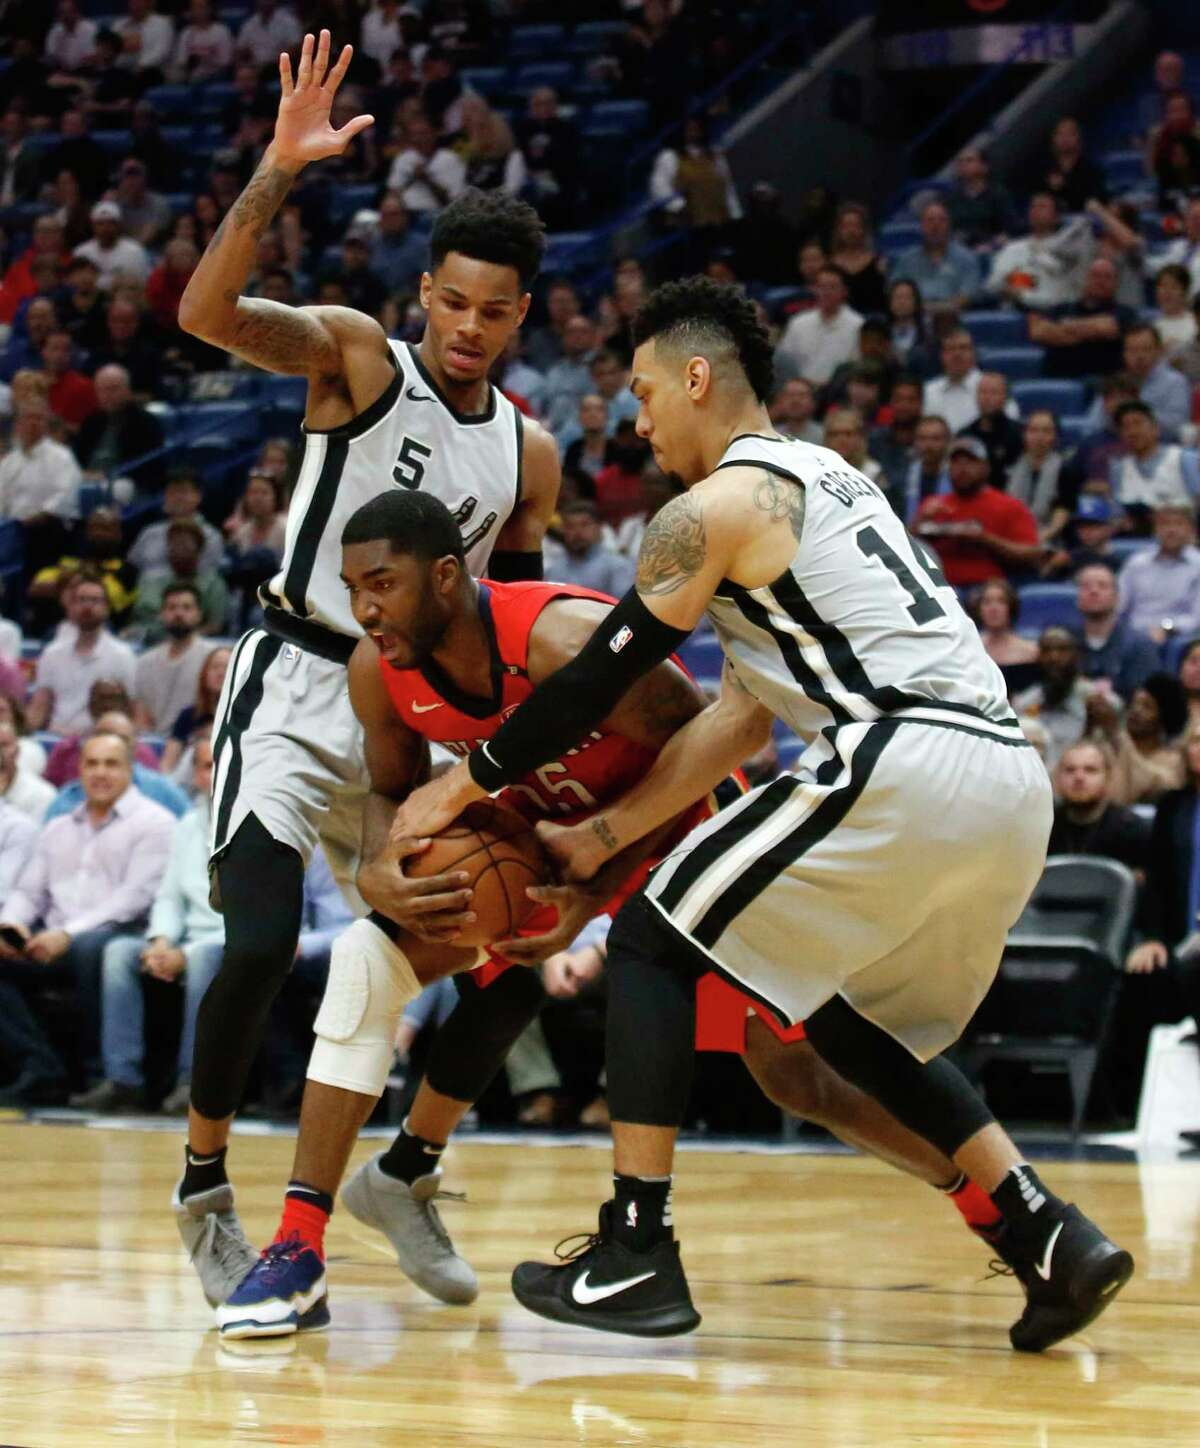 San Antonio Spurs guard Danny Green (14) steals the ball from New Orleans Pelicans forward E'Twaun Moore (55) as guard Dejounte Murray (5) defends in the first half of an NBA basketball game in New Orleans, Wednesday, April 11, 2018. (AP Photo/Scott Threlkeld)